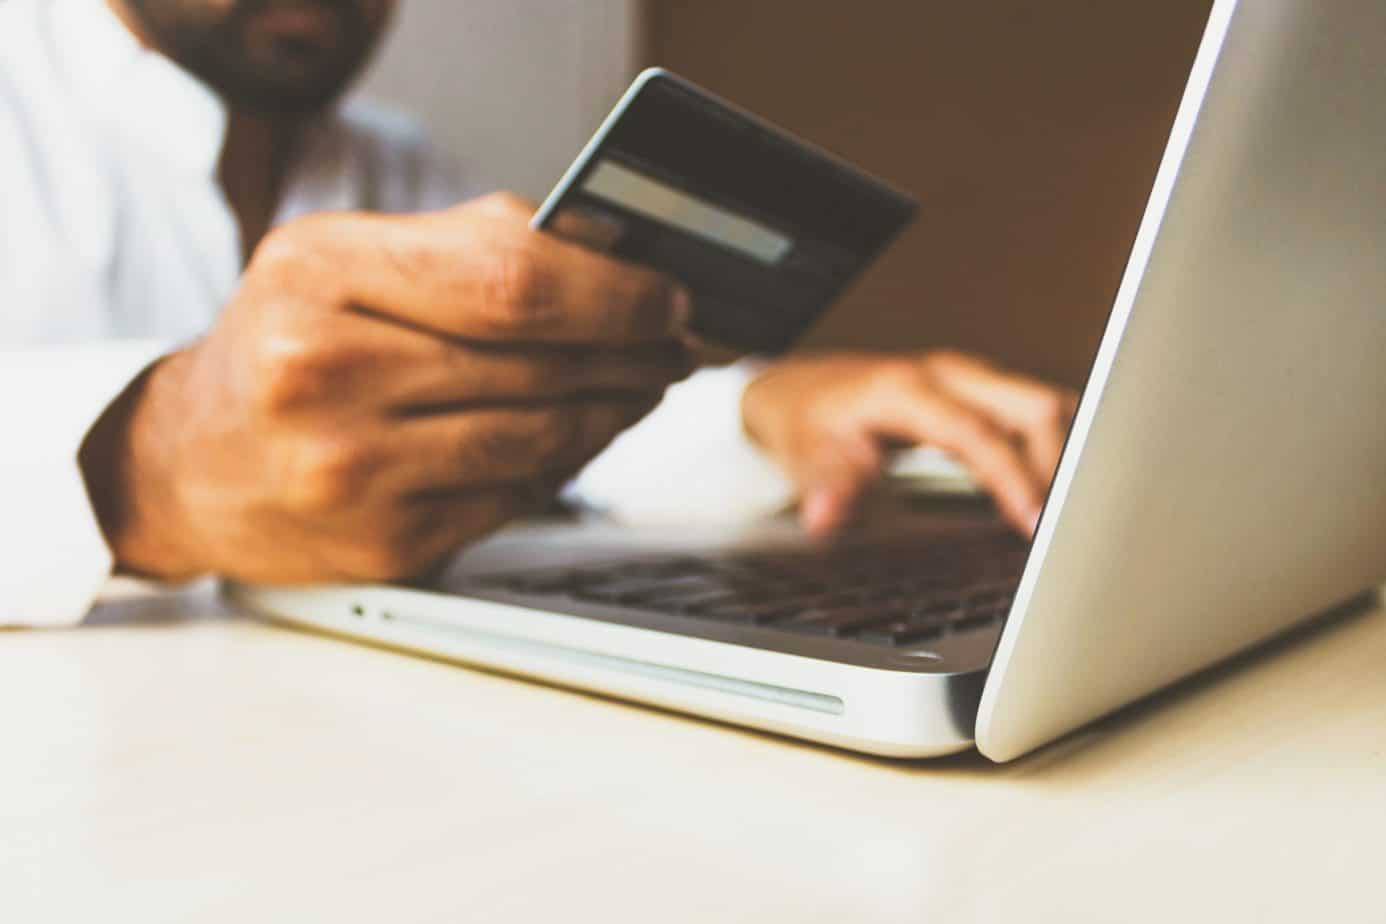 A man with credit card in his hand in front of a open laptop